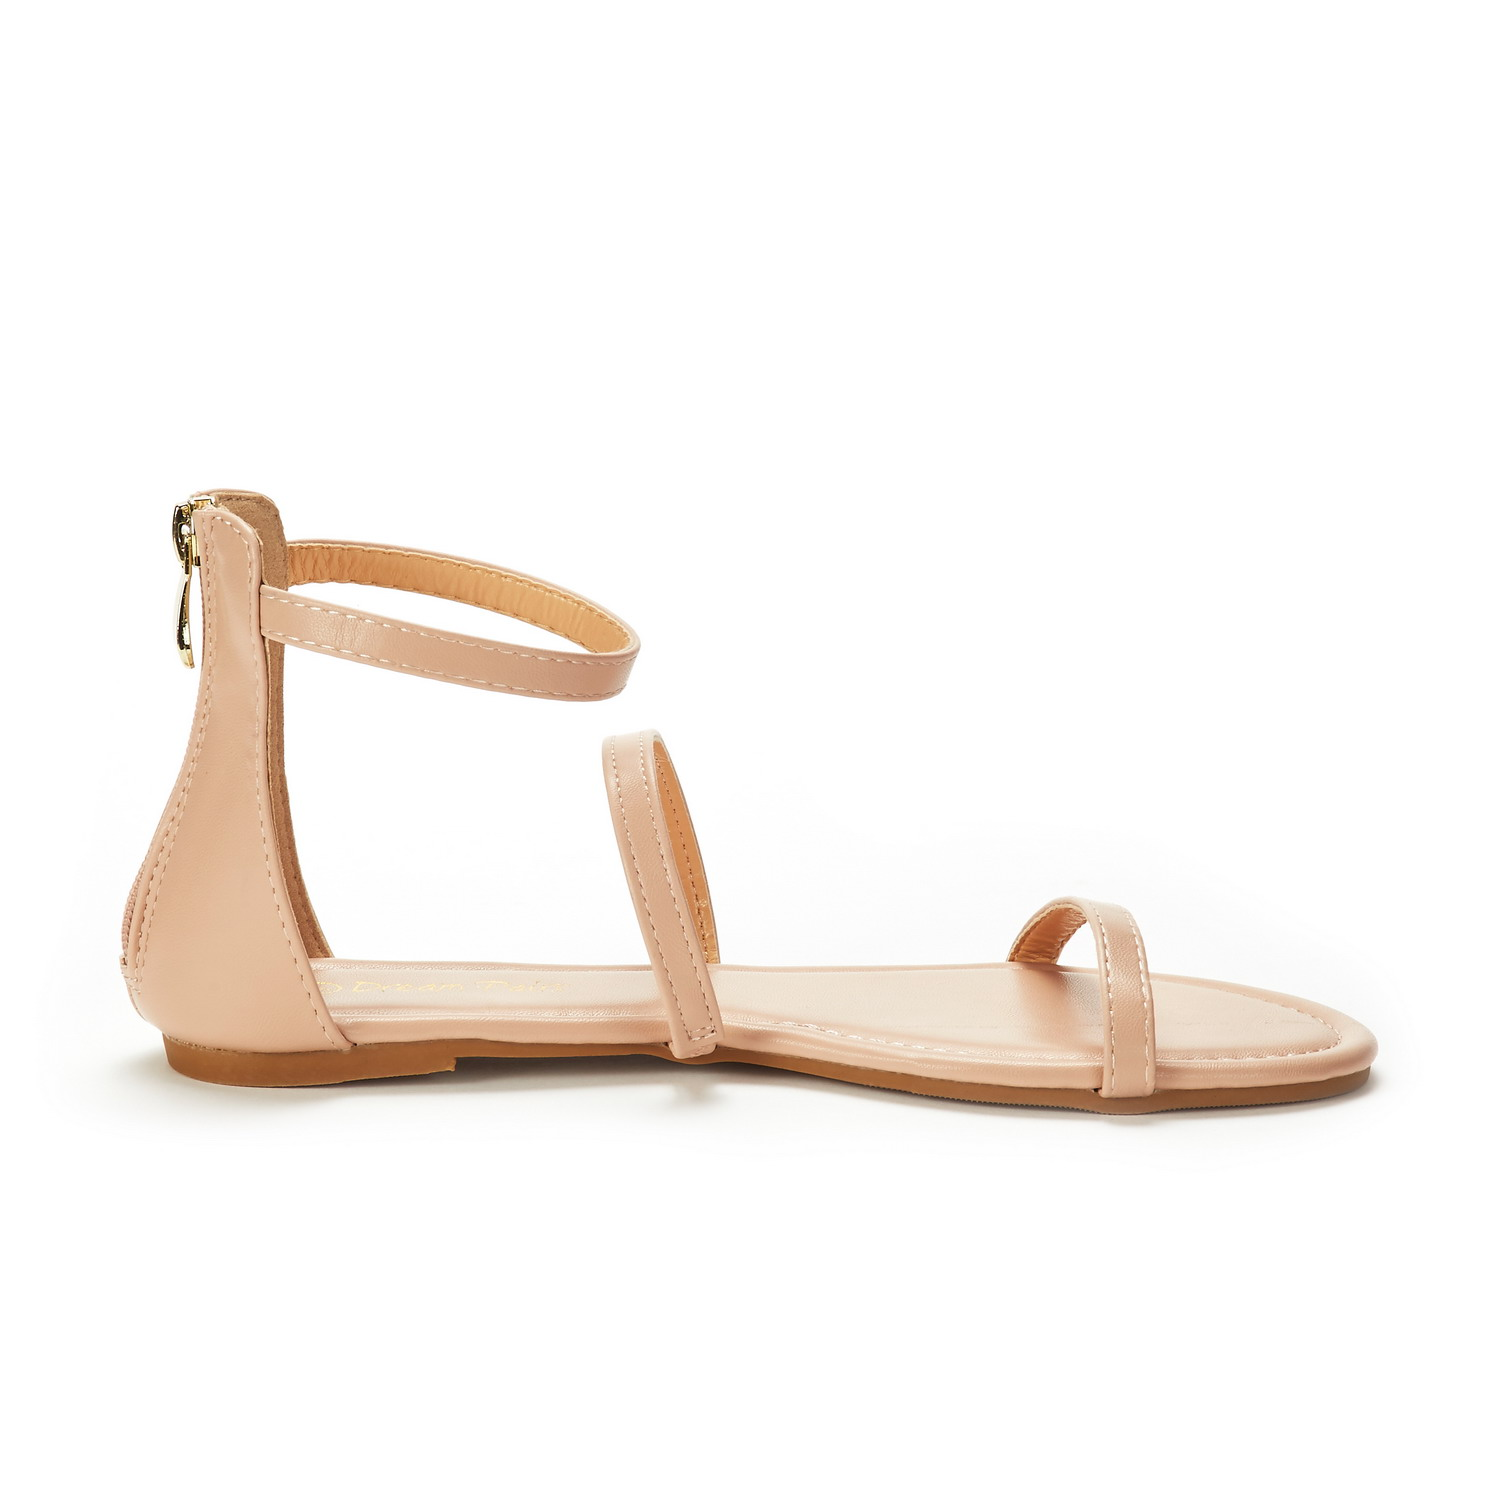 DREAM-PAIRS-Women-Athena-Low-Fashion-Gladiator-Design-Ankle-Strap-Flat-Sandals